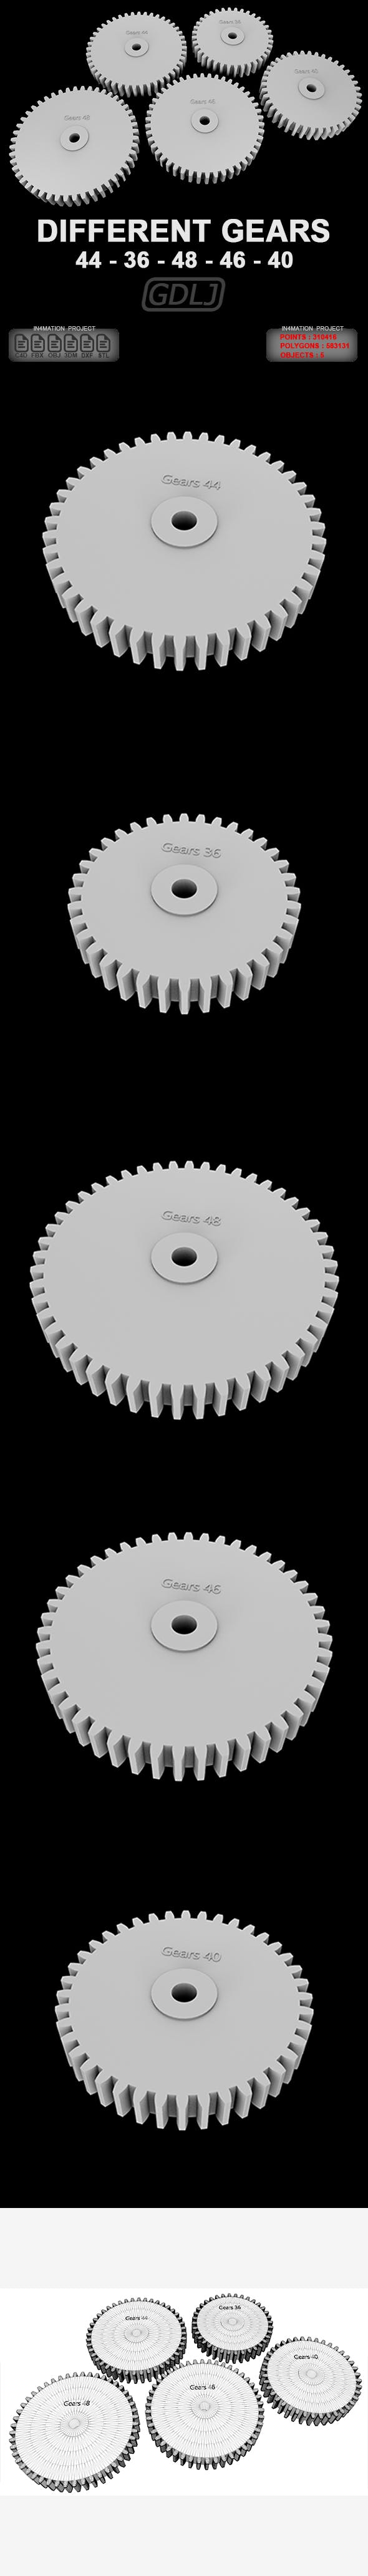 5 Different gears - 3DOcean Item for Sale